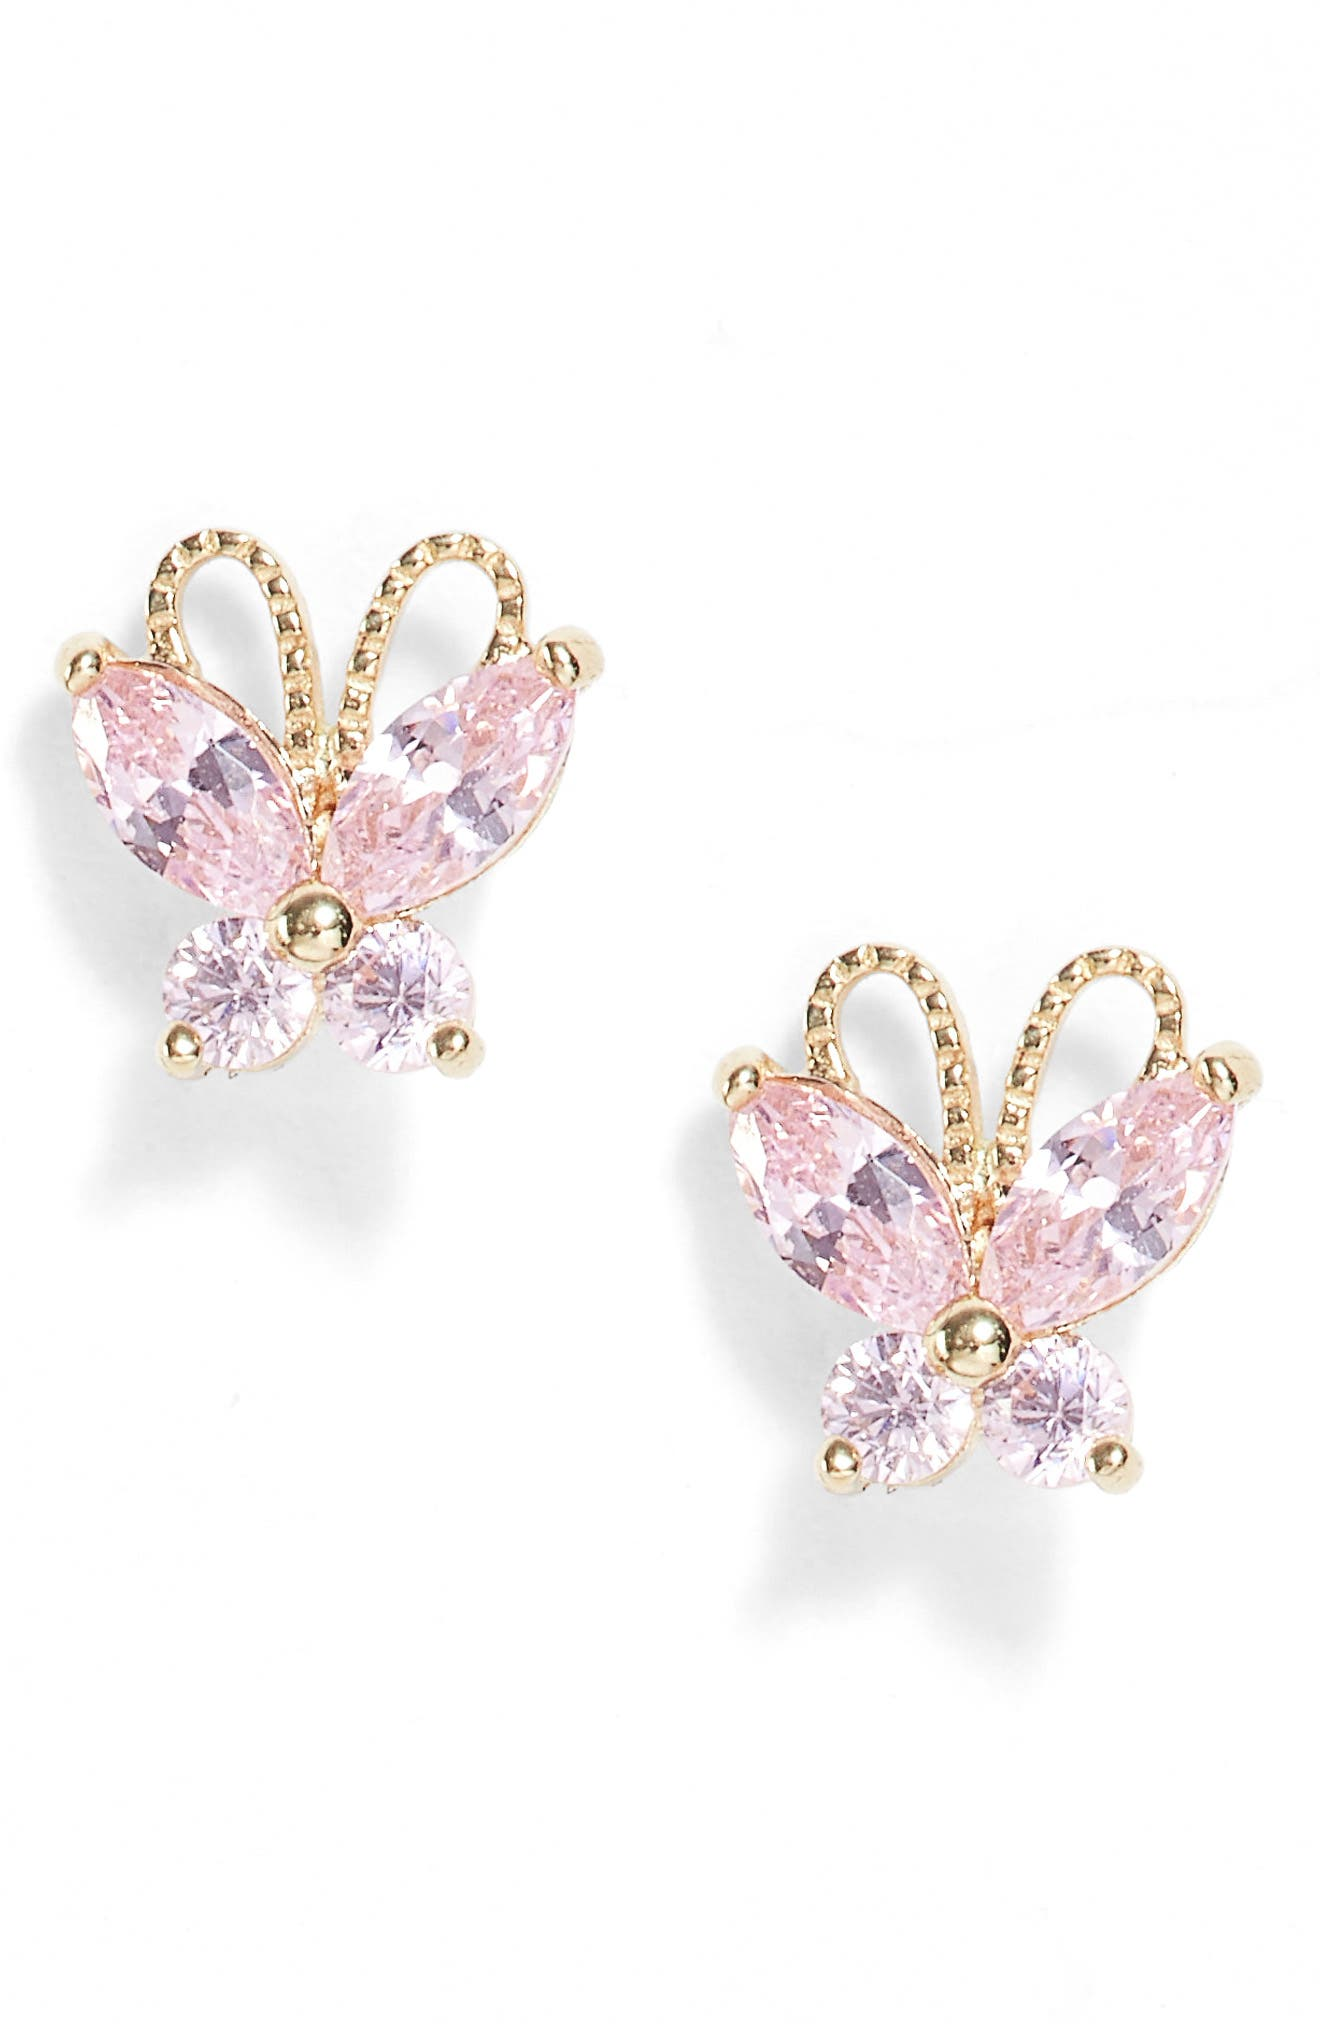 14k Gold & Pink Cubic Zirconia Butterfly Earrings,                         Main,                         color,